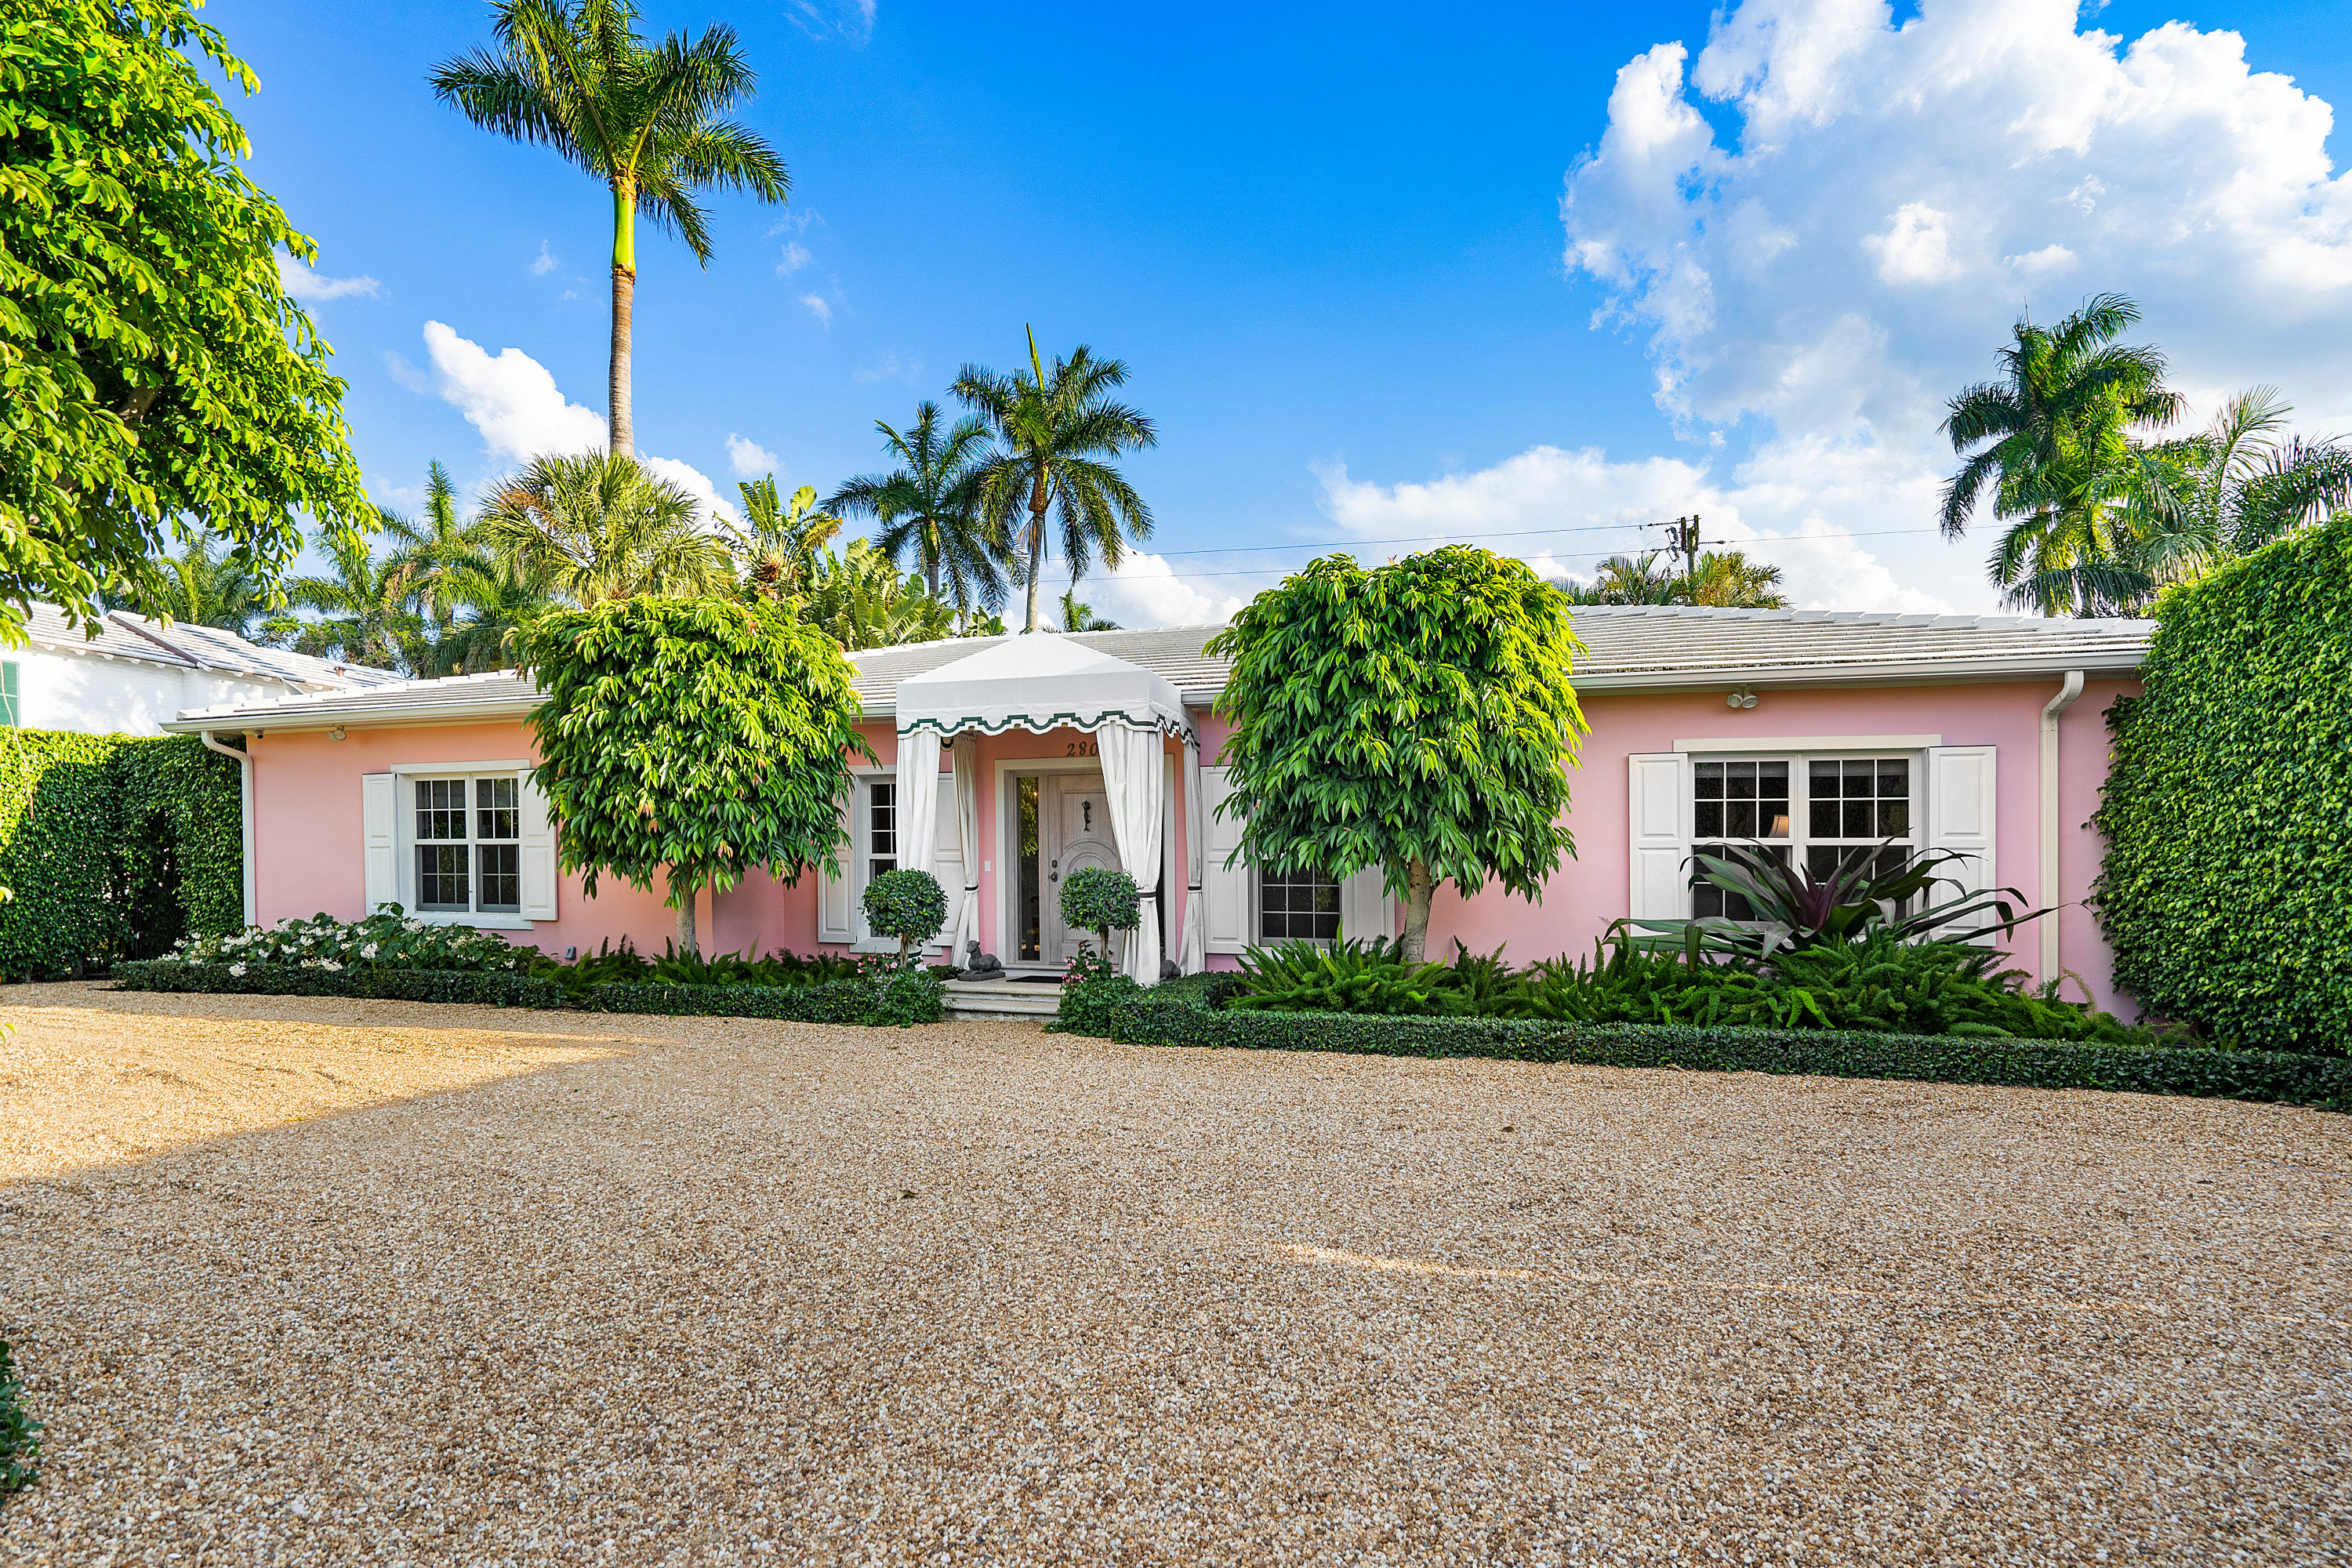 280 Sanford Avenue, Palm Beach, Florida 33480, 4 Bedrooms Bedrooms, ,4 BathroomsBathrooms,Single Family,For Rent,Sanford,RX-10631270